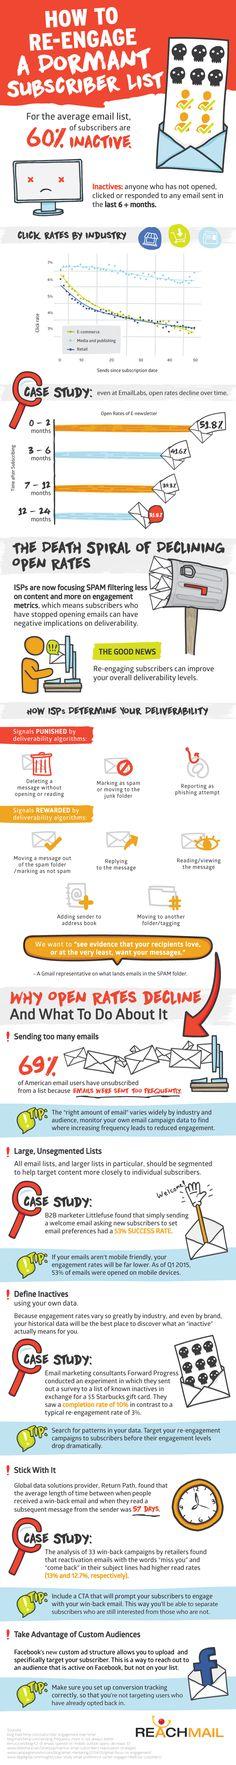 How to get your email list to interact more with your brand and open emails.